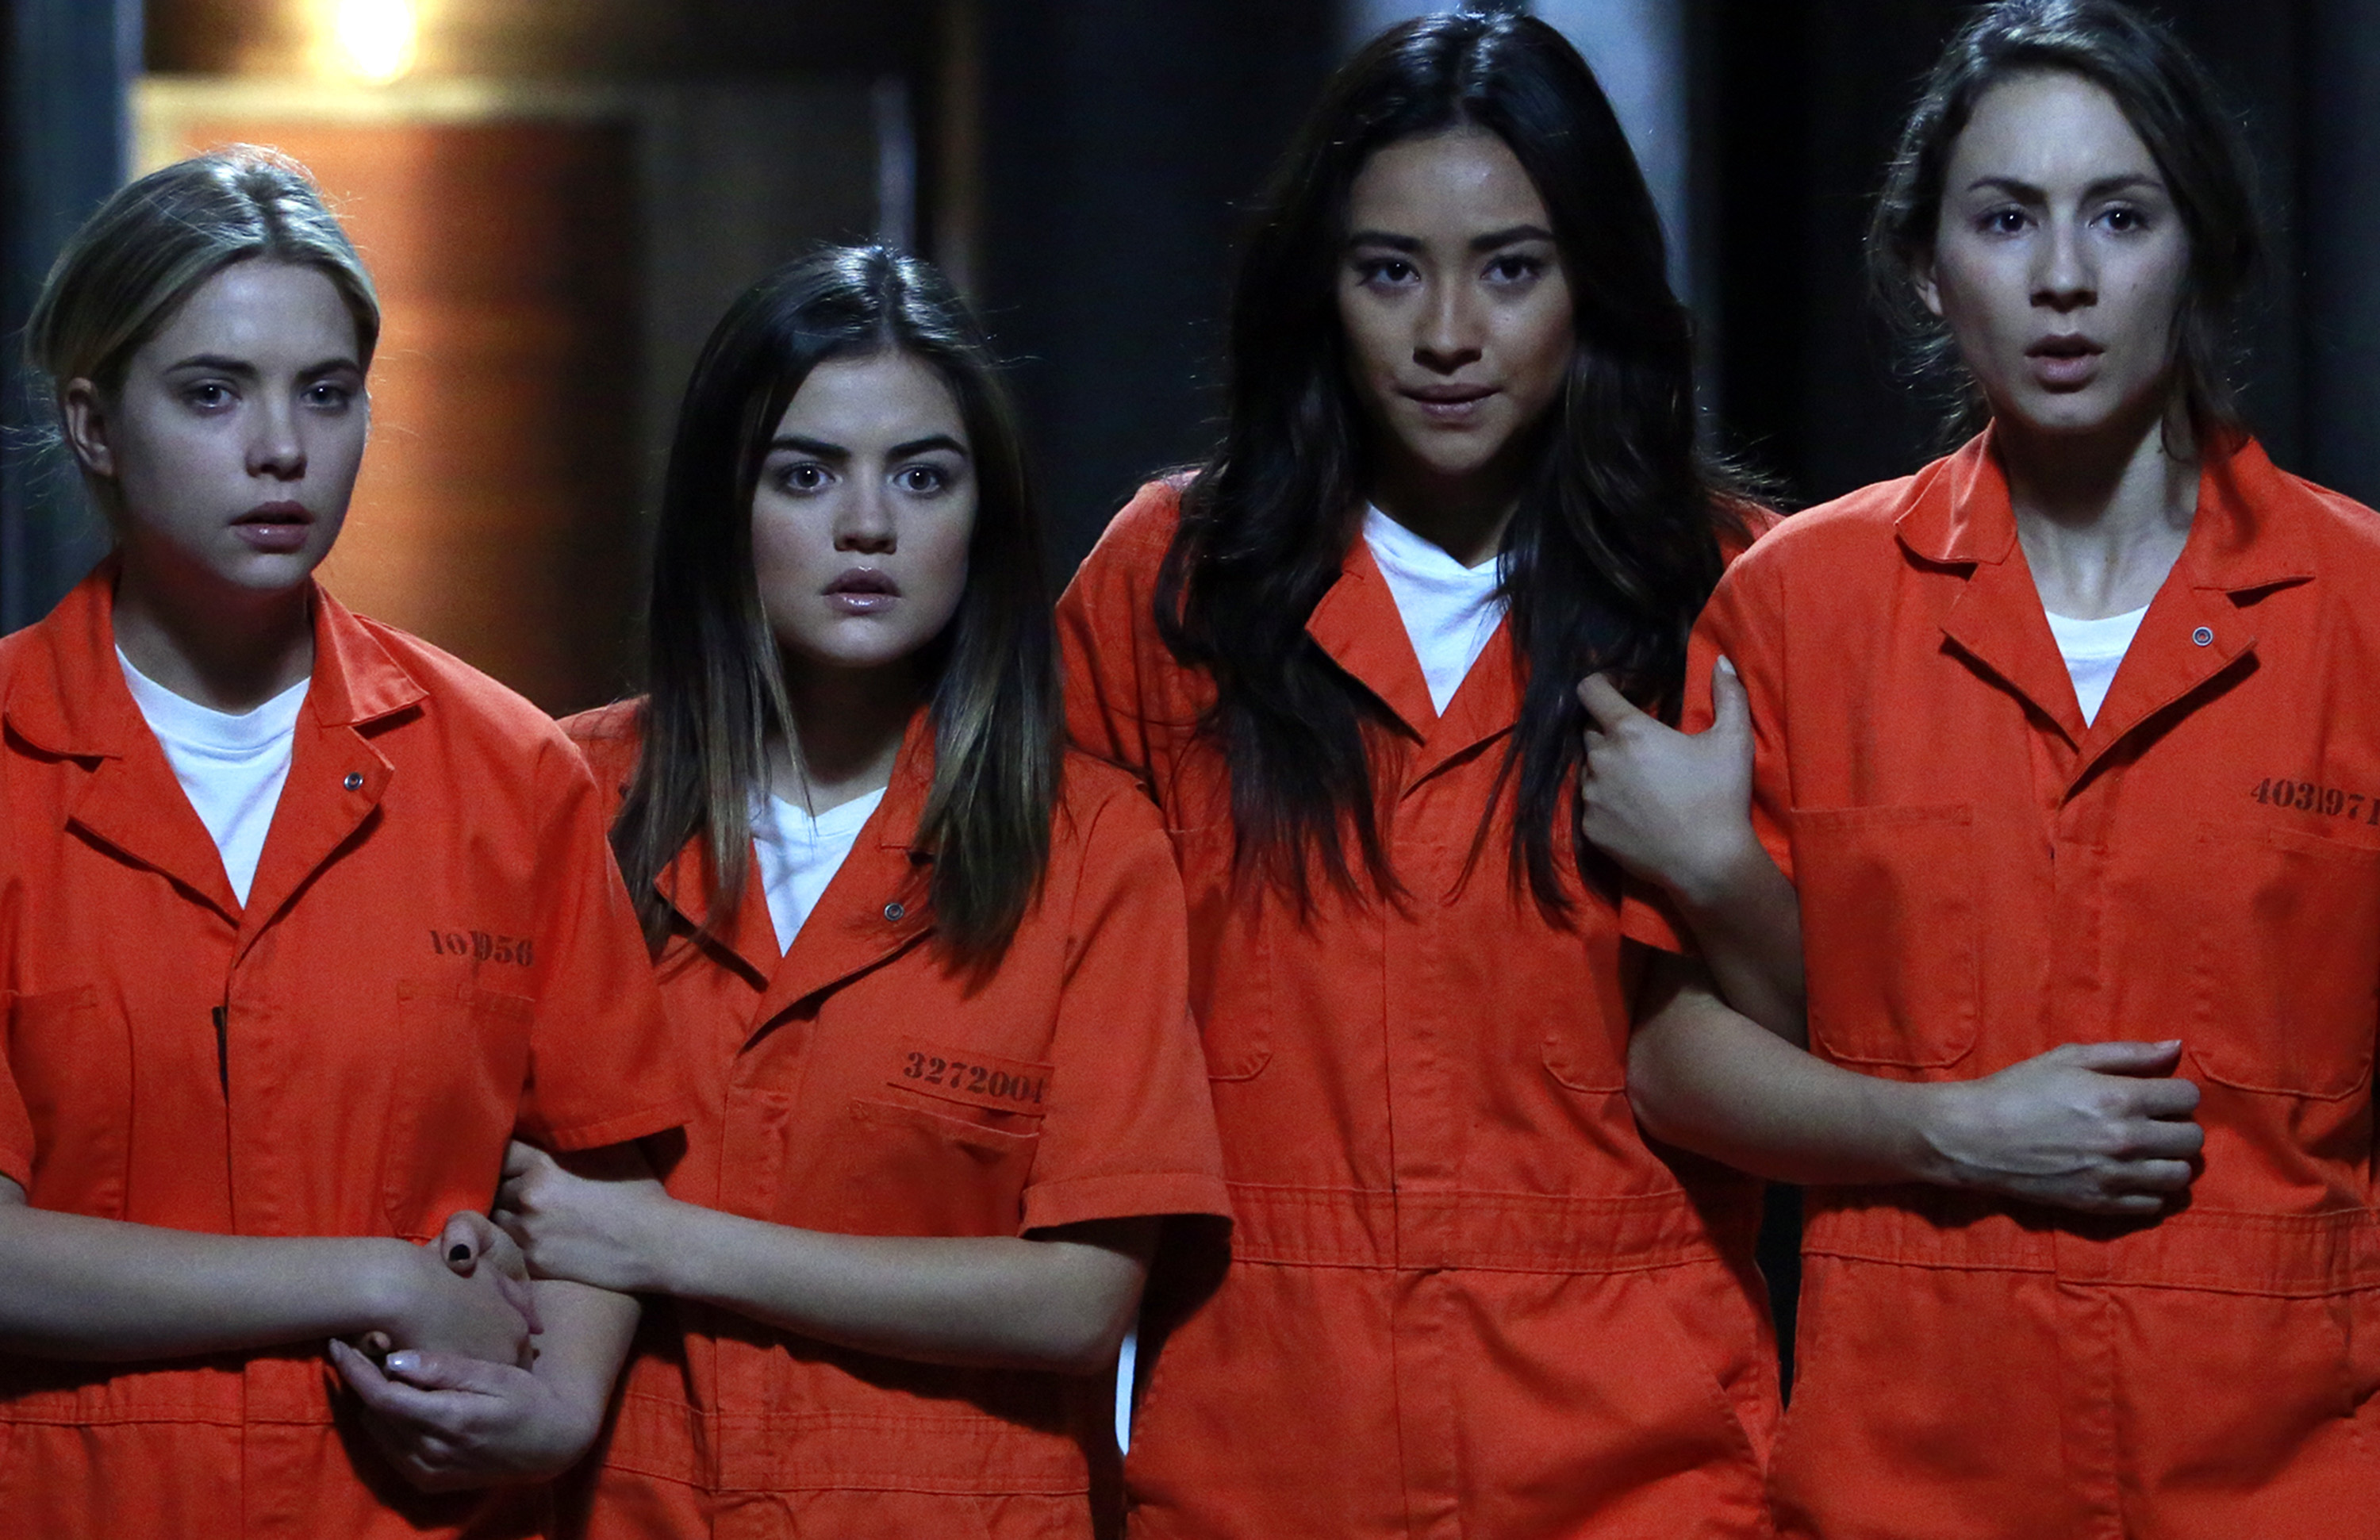 A scene from 'Welcome to the Dollhouse,' the season finale of Pretty Little Liars that premiered on March 24, 2015.